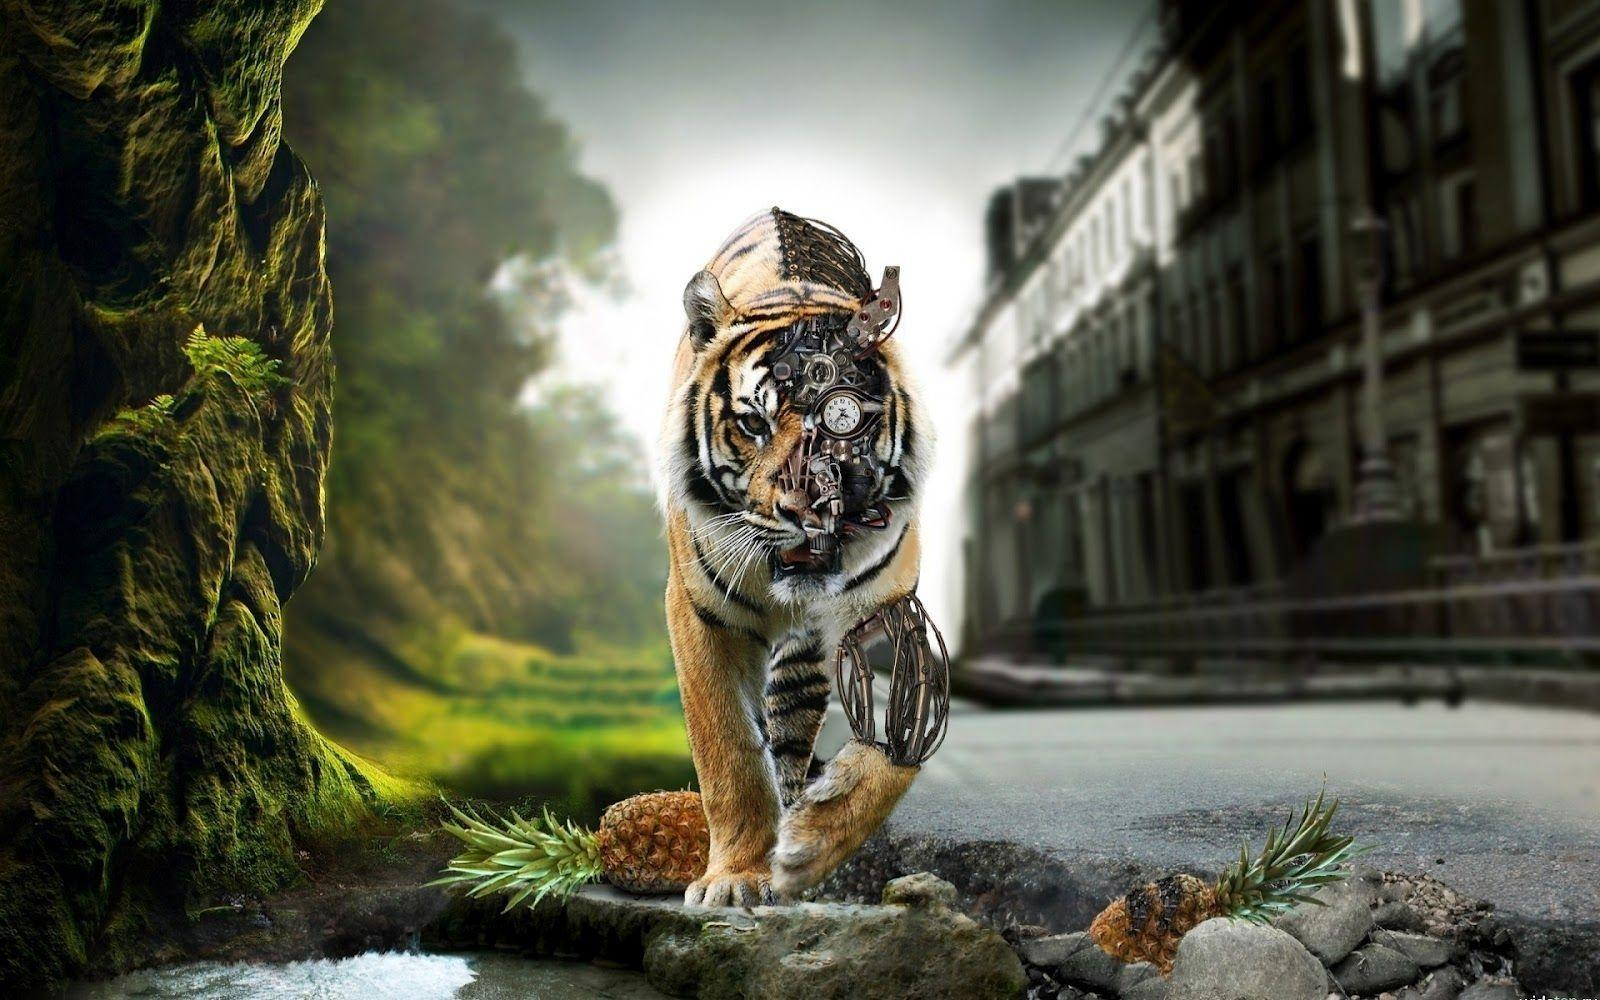 Wallpapers For > Tiger Wallpapers Hd For Desktop